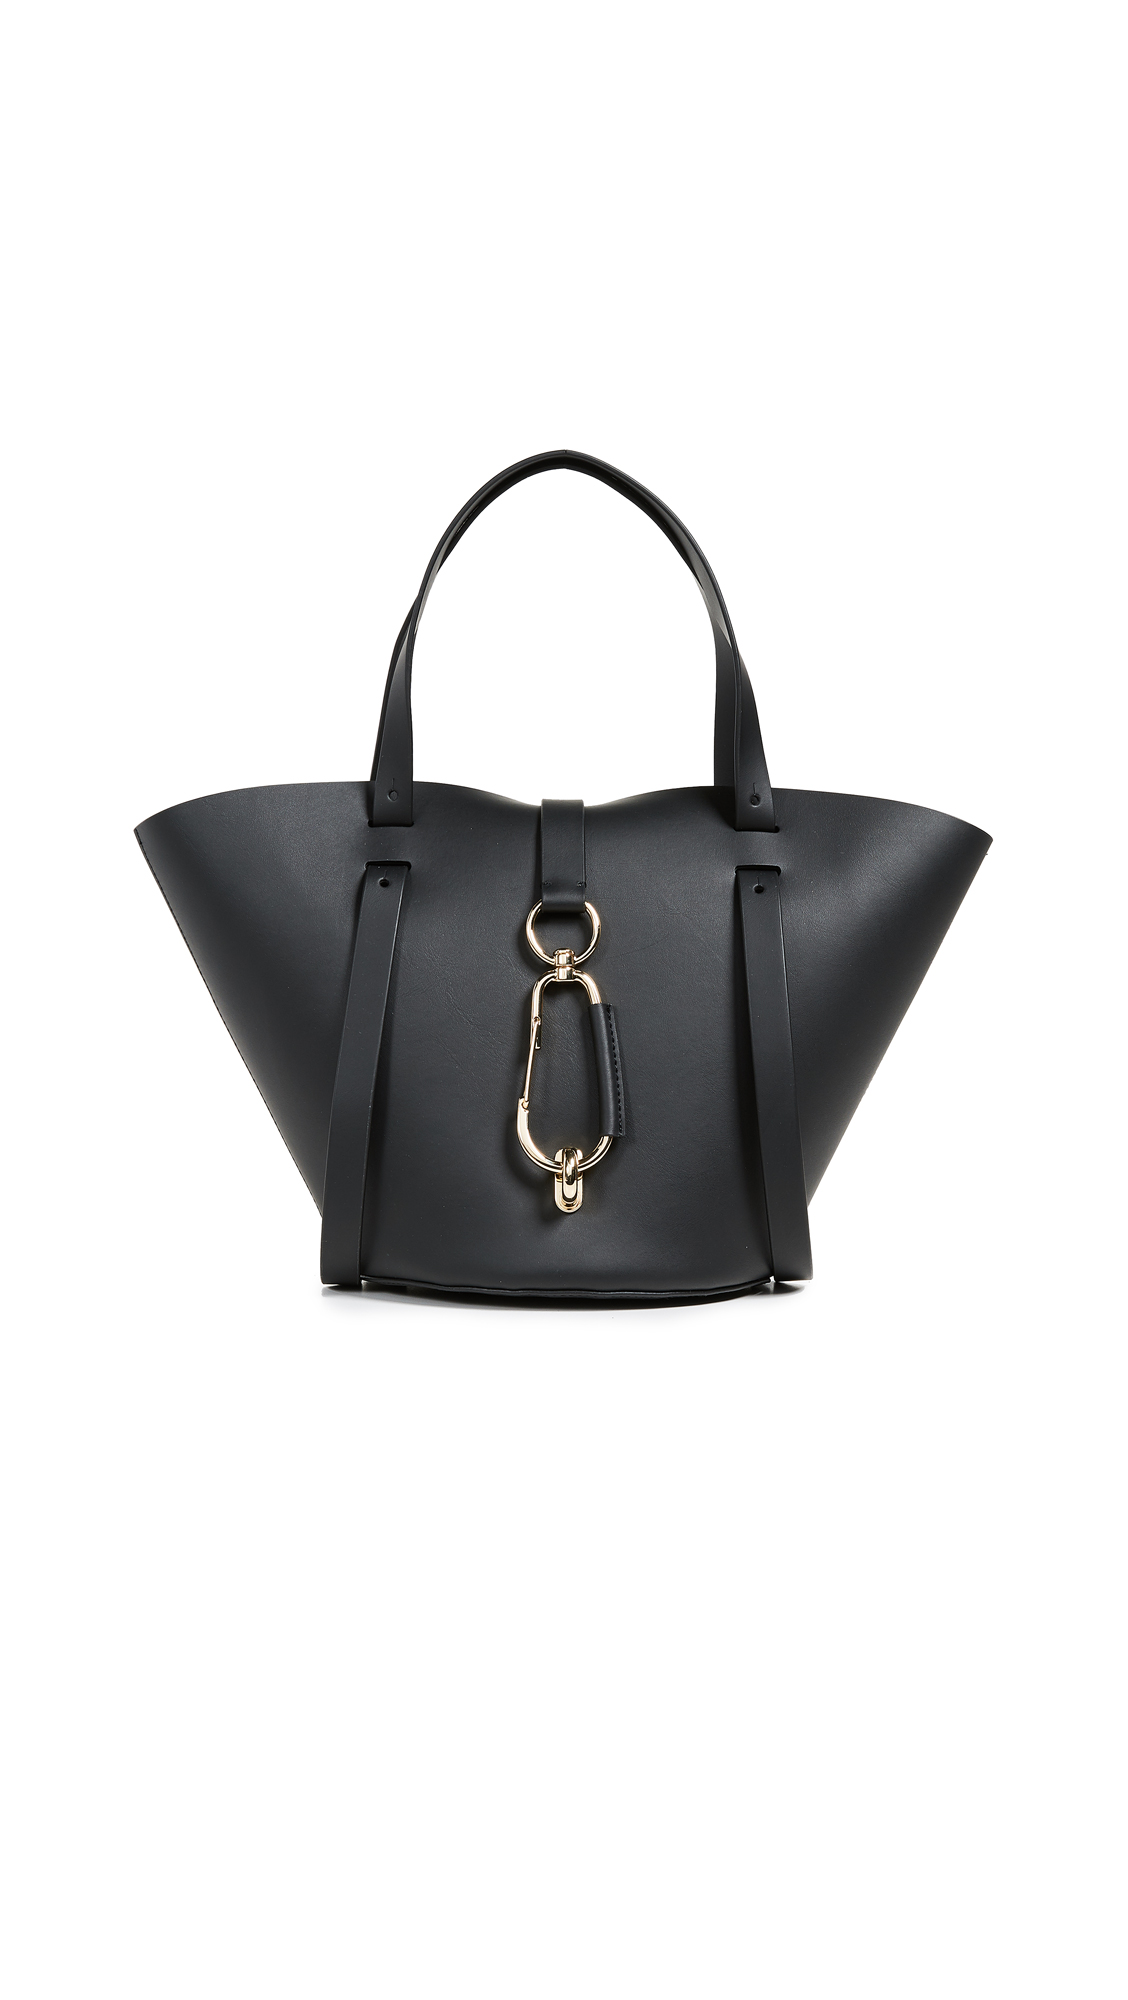 ZAC Zac Posen Belay Small Tote - Black